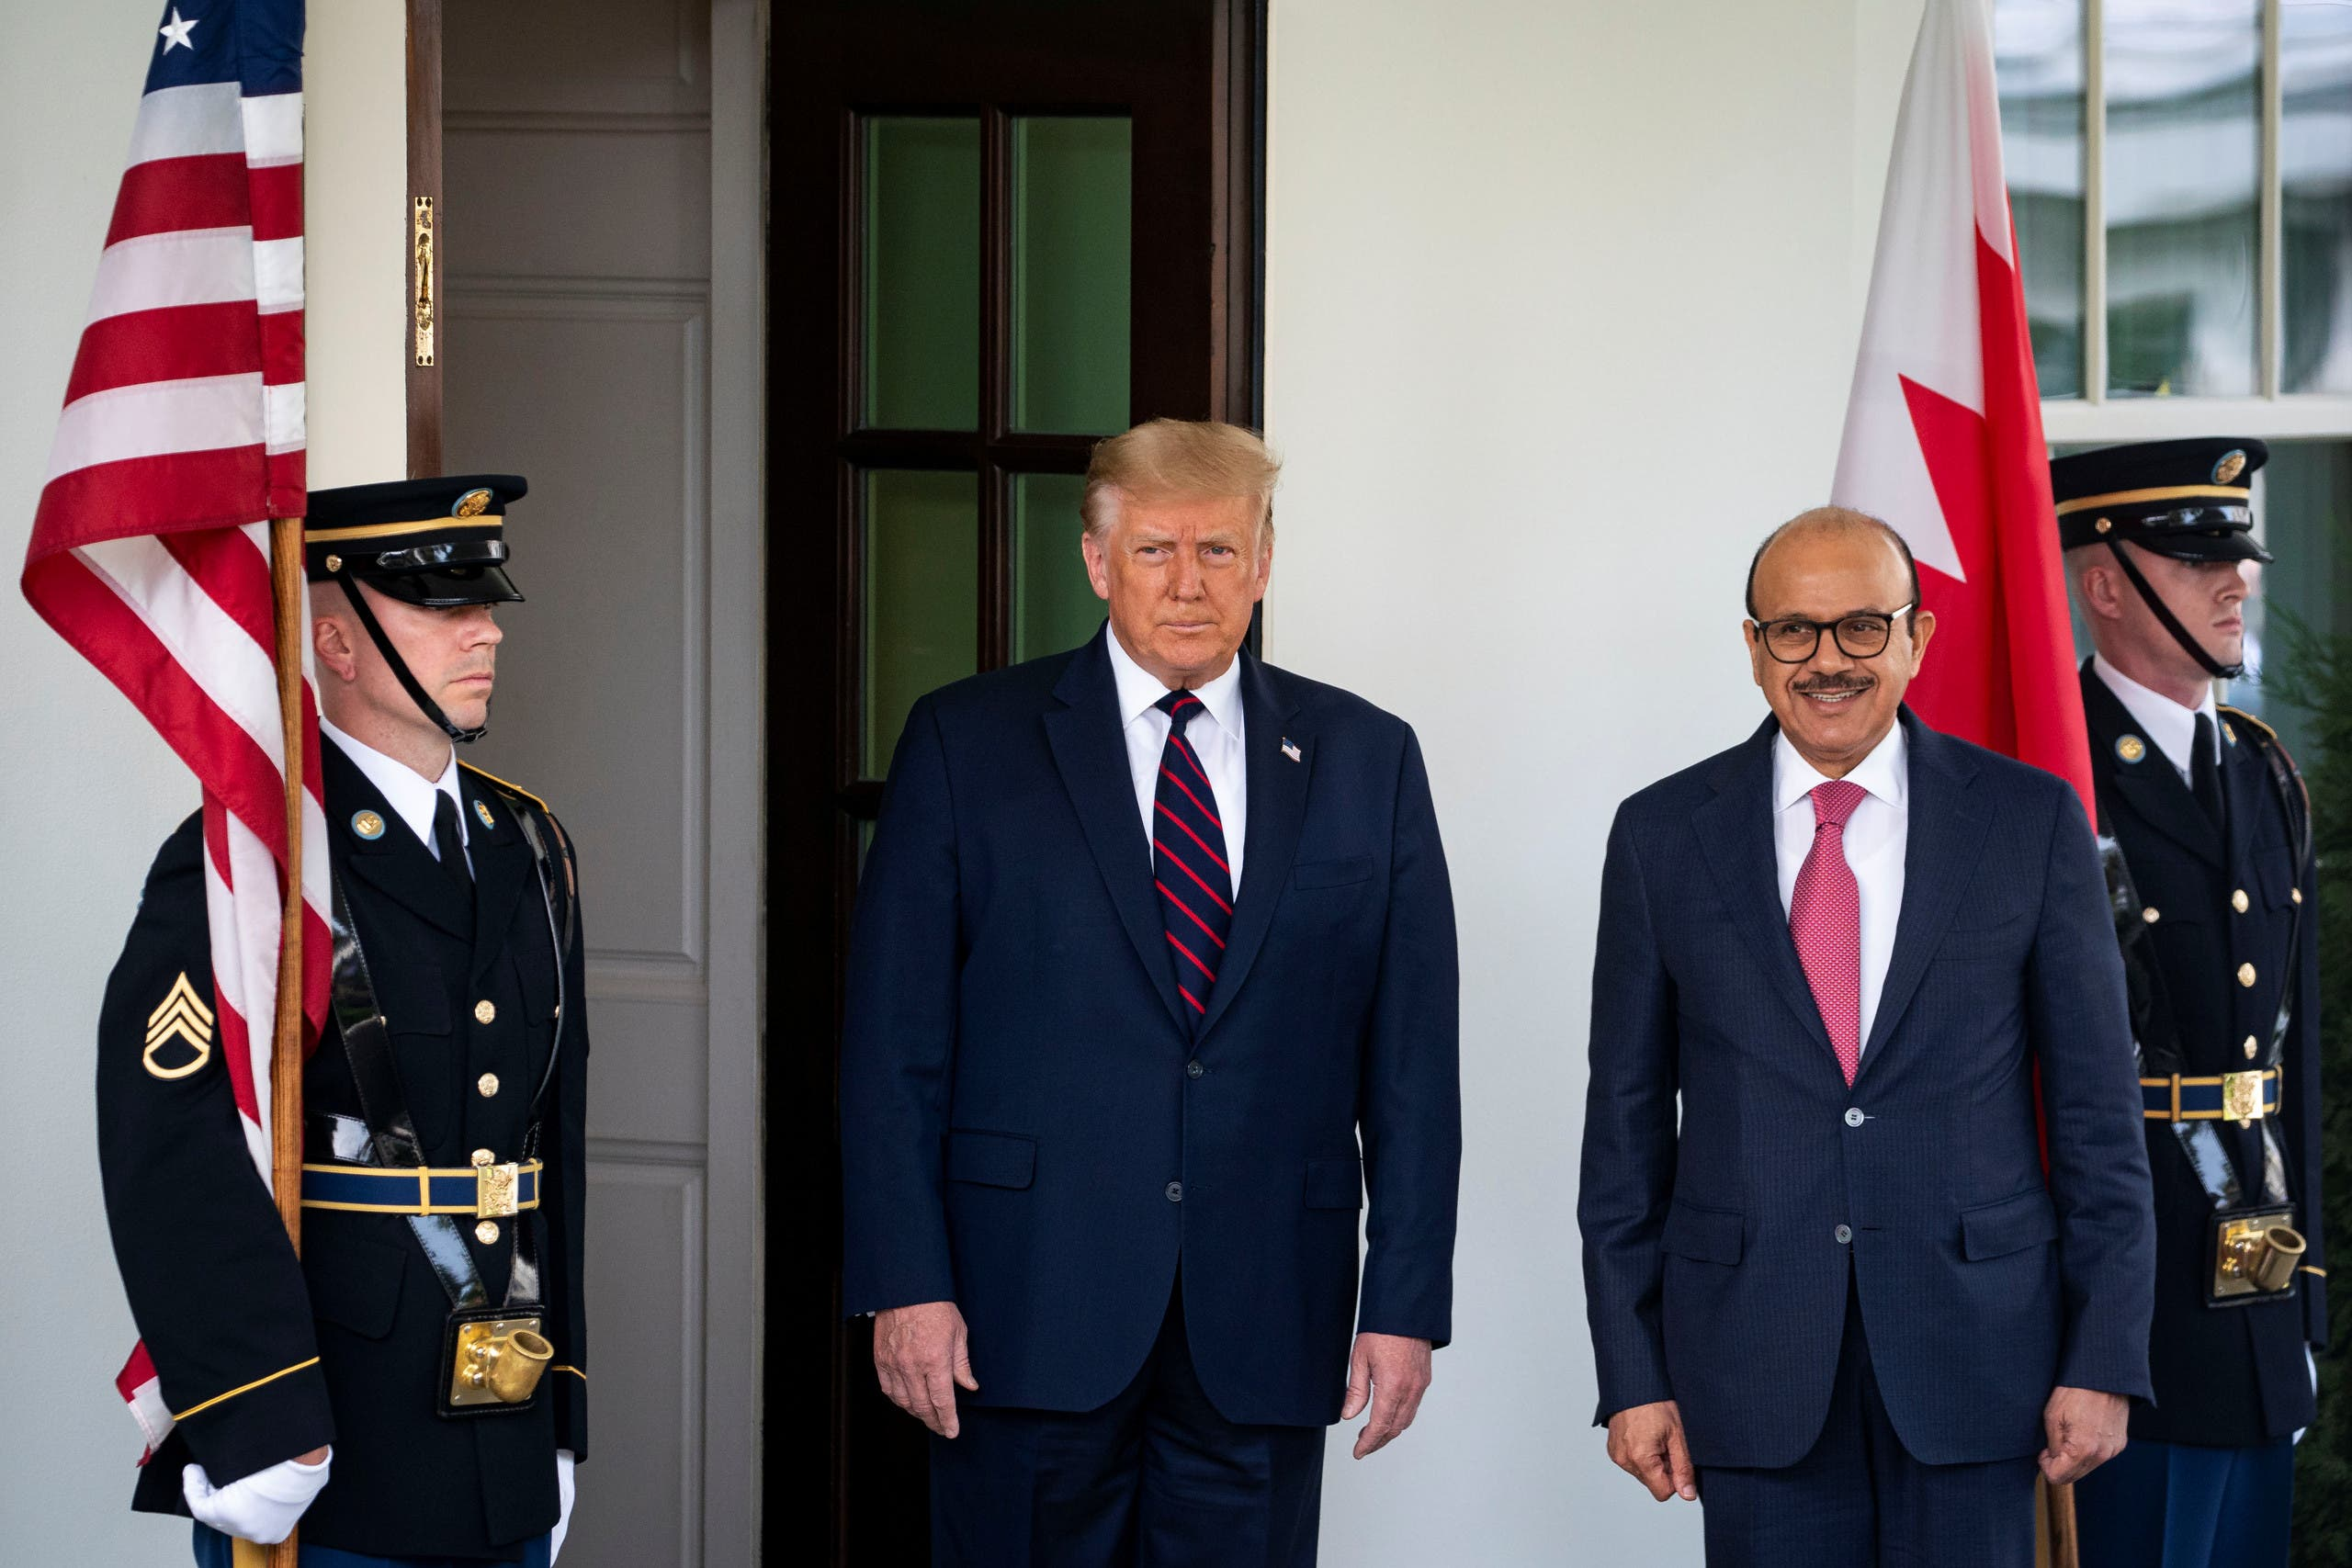 US President Donald Trump welcomes Bahrain's Foreign Minister Abdullatif bin Rashid Al Zayani at the White House in Washington on September 15, 2020. (Reuters)